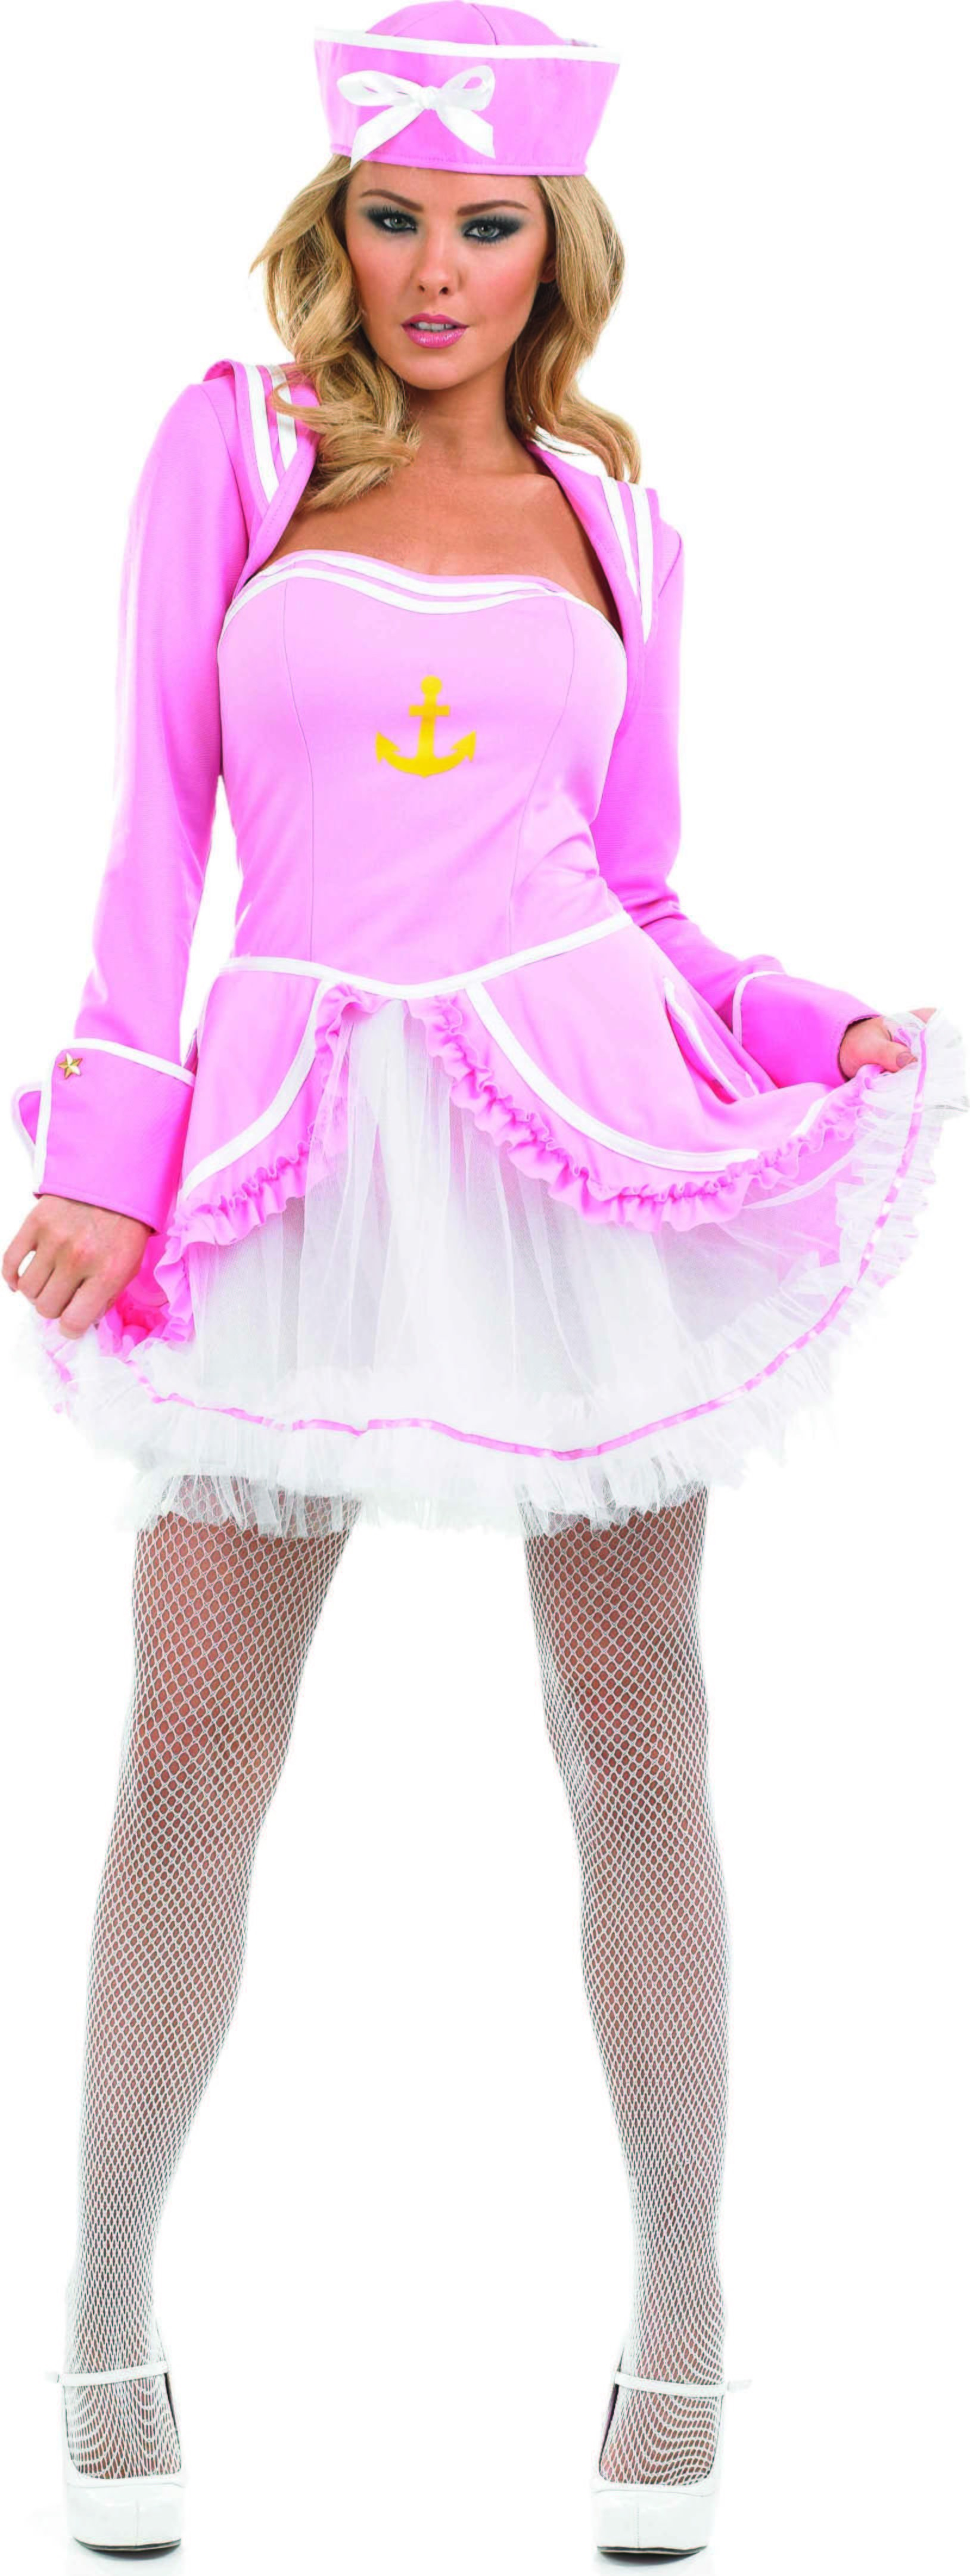 Ladies Pink Tutu Sailor Girl Tutus - (Pink)